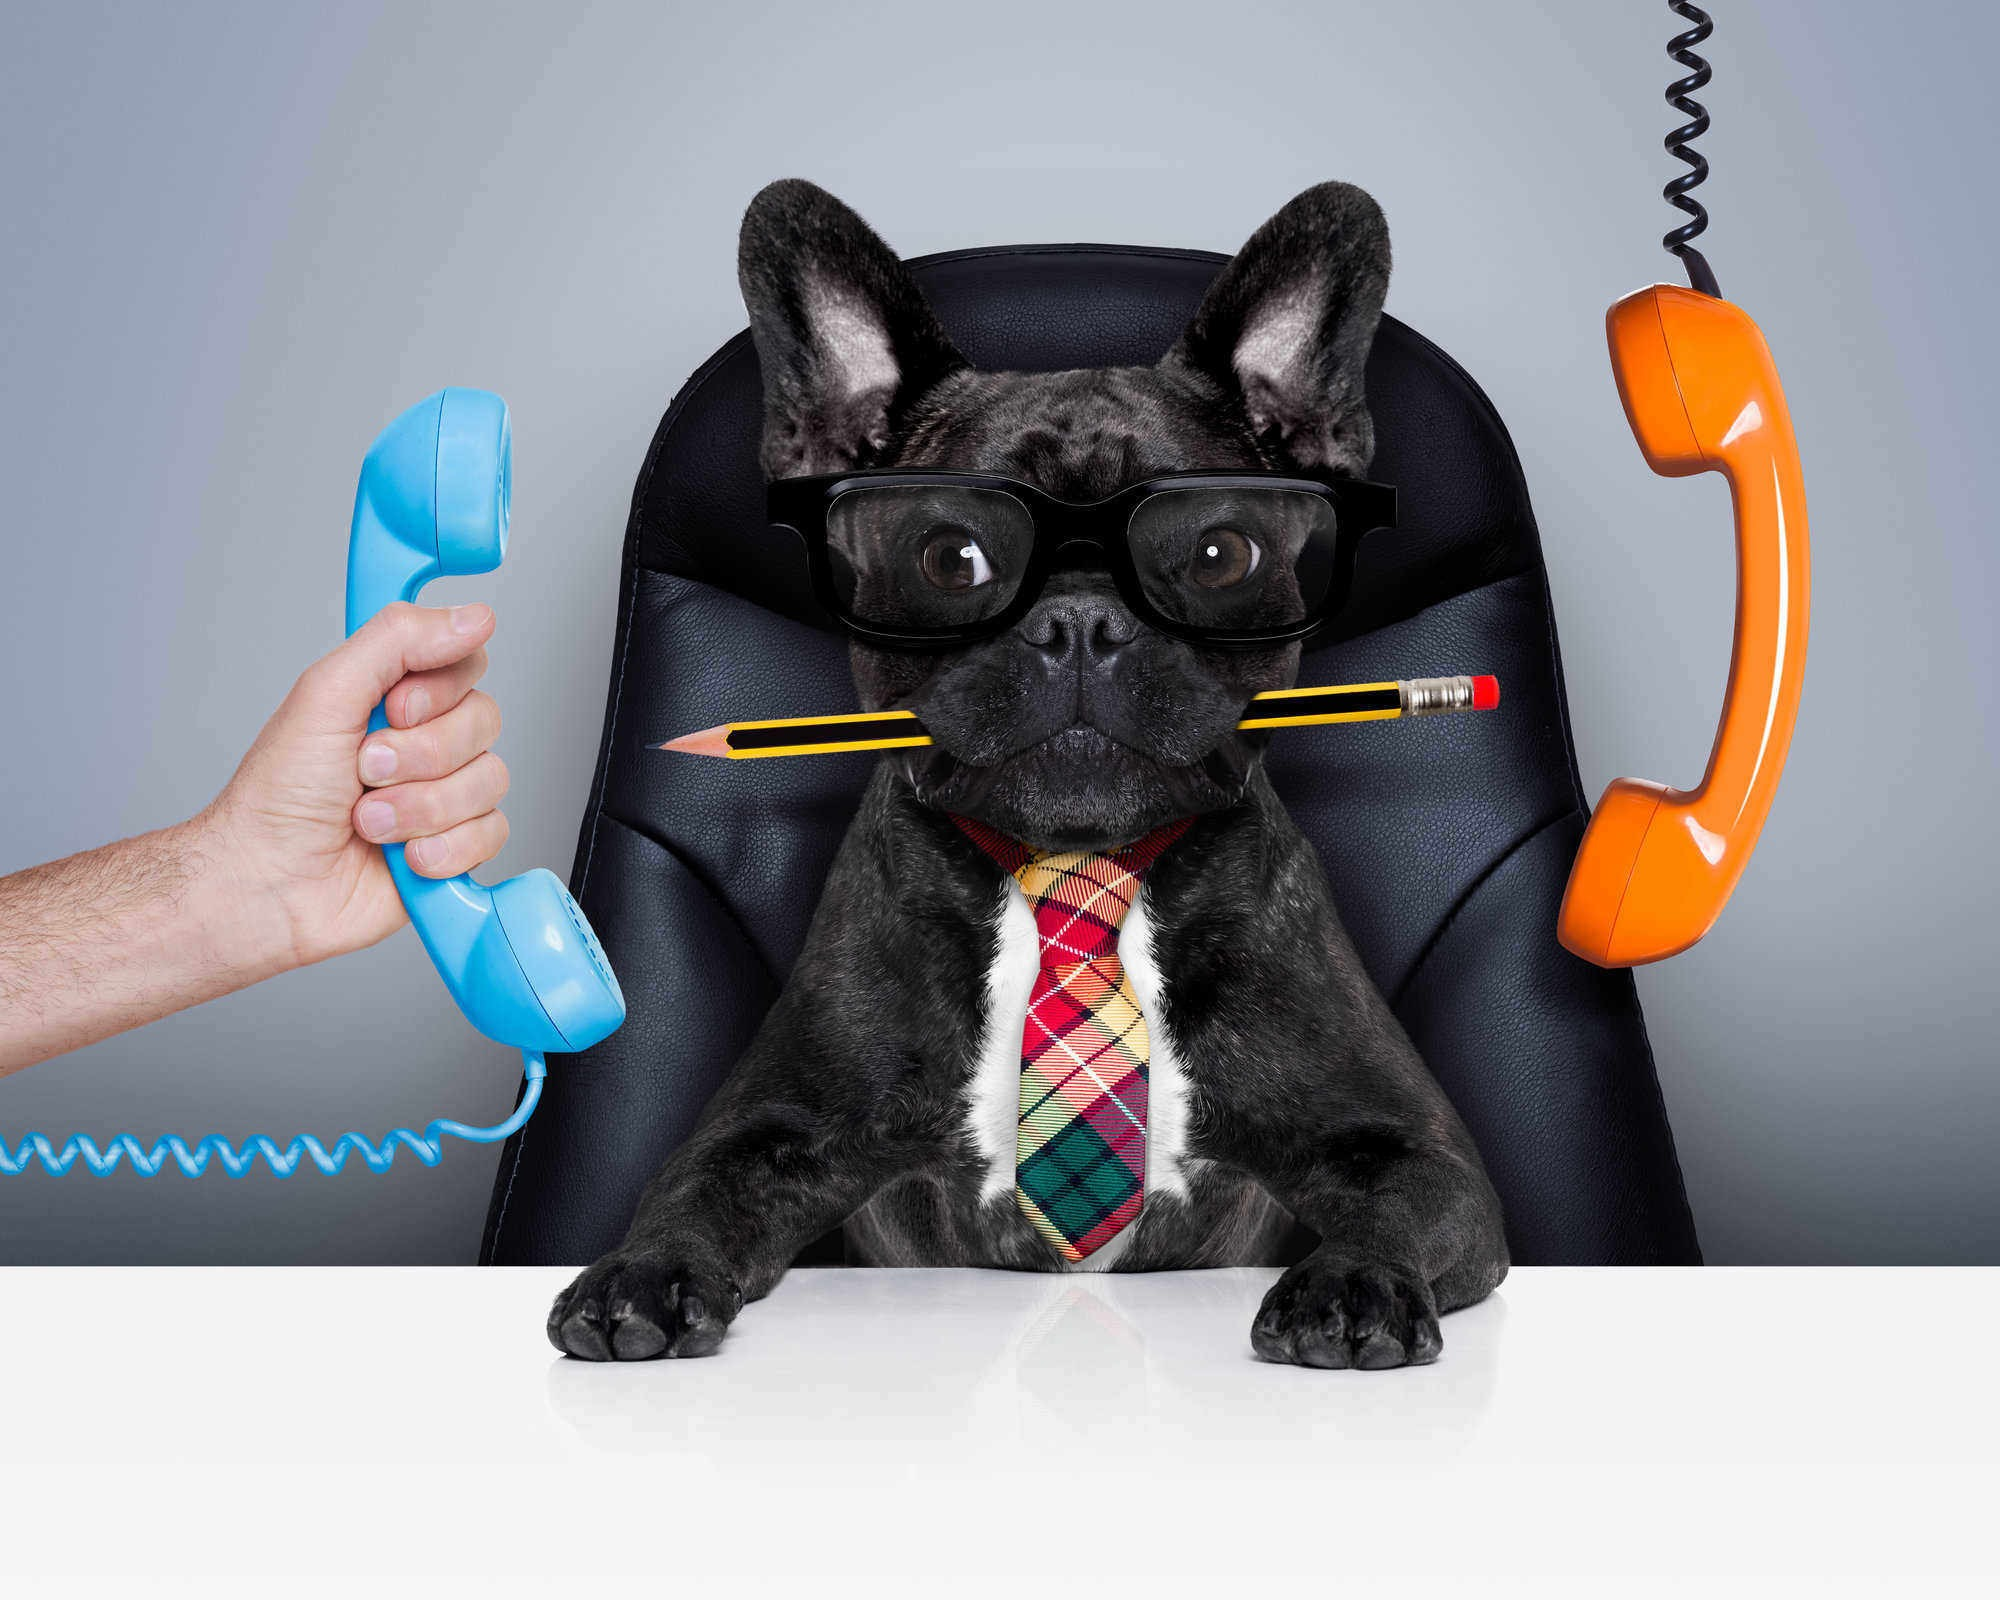 office businessman french bulldog dog  as  boss and chef , busy and burnout , sitting on leather chair and desk, telephones hanging around